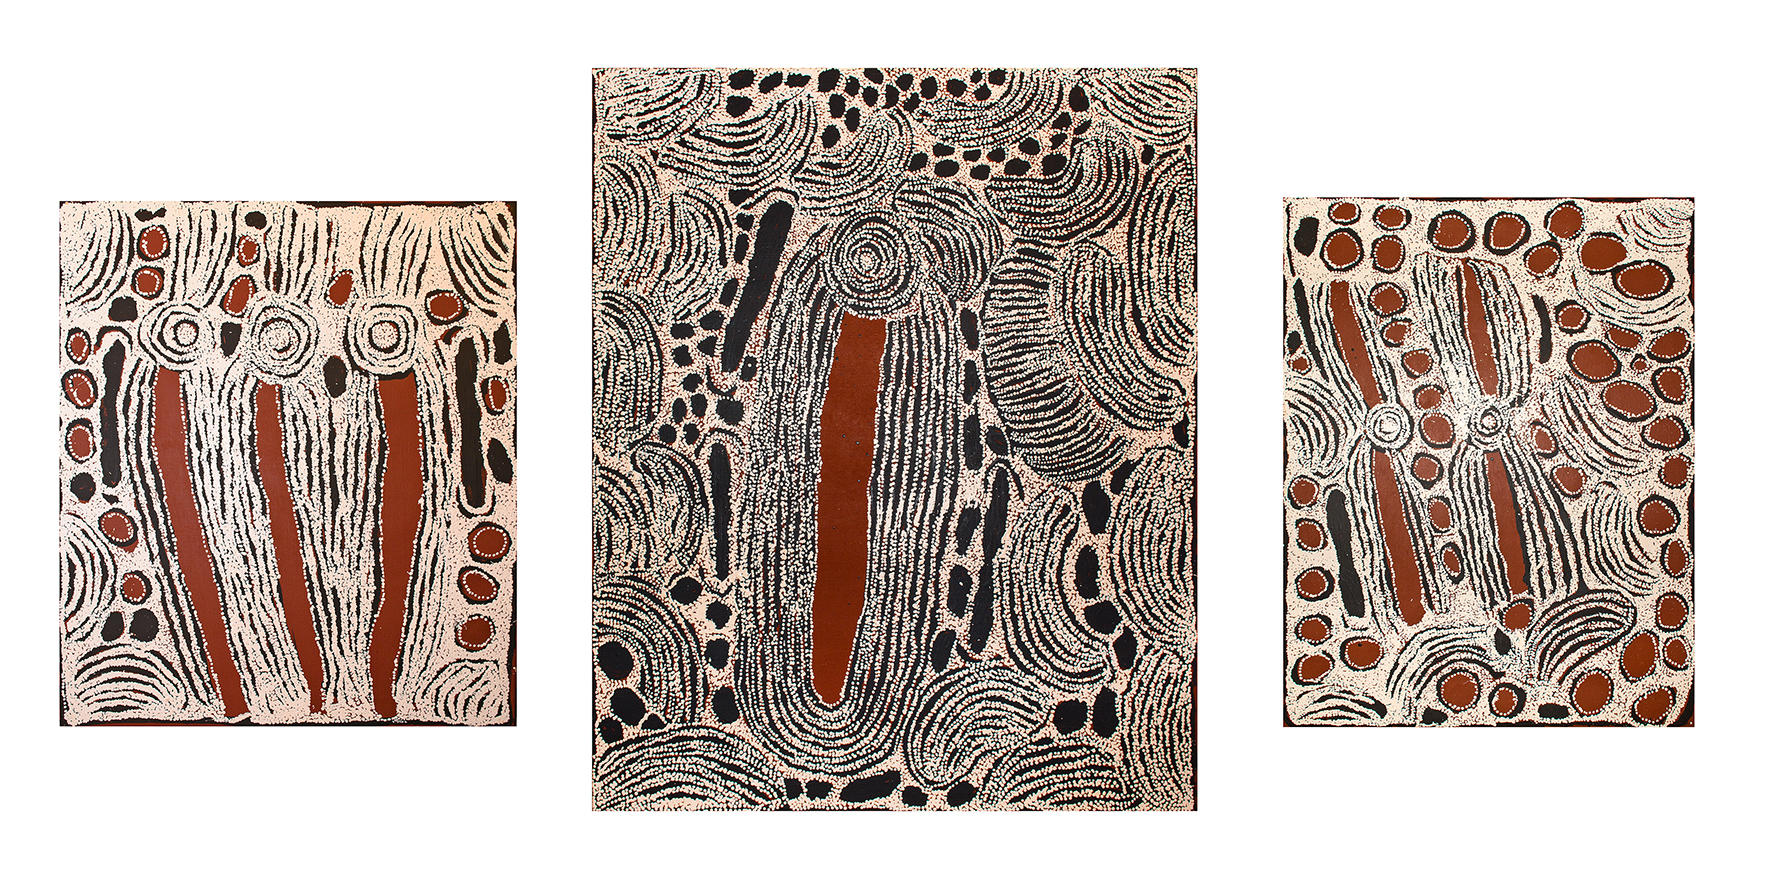 Trois œuvres de l'artiste Aborigène Ningura Napurrula. 107 x 91 cm. 153 x 122 cm. 122 x 91 cm. Provenance : Papunya Tula Artists © Photo : Aboriginal Signature • Estrangin gallery with the courtesy of the artist.